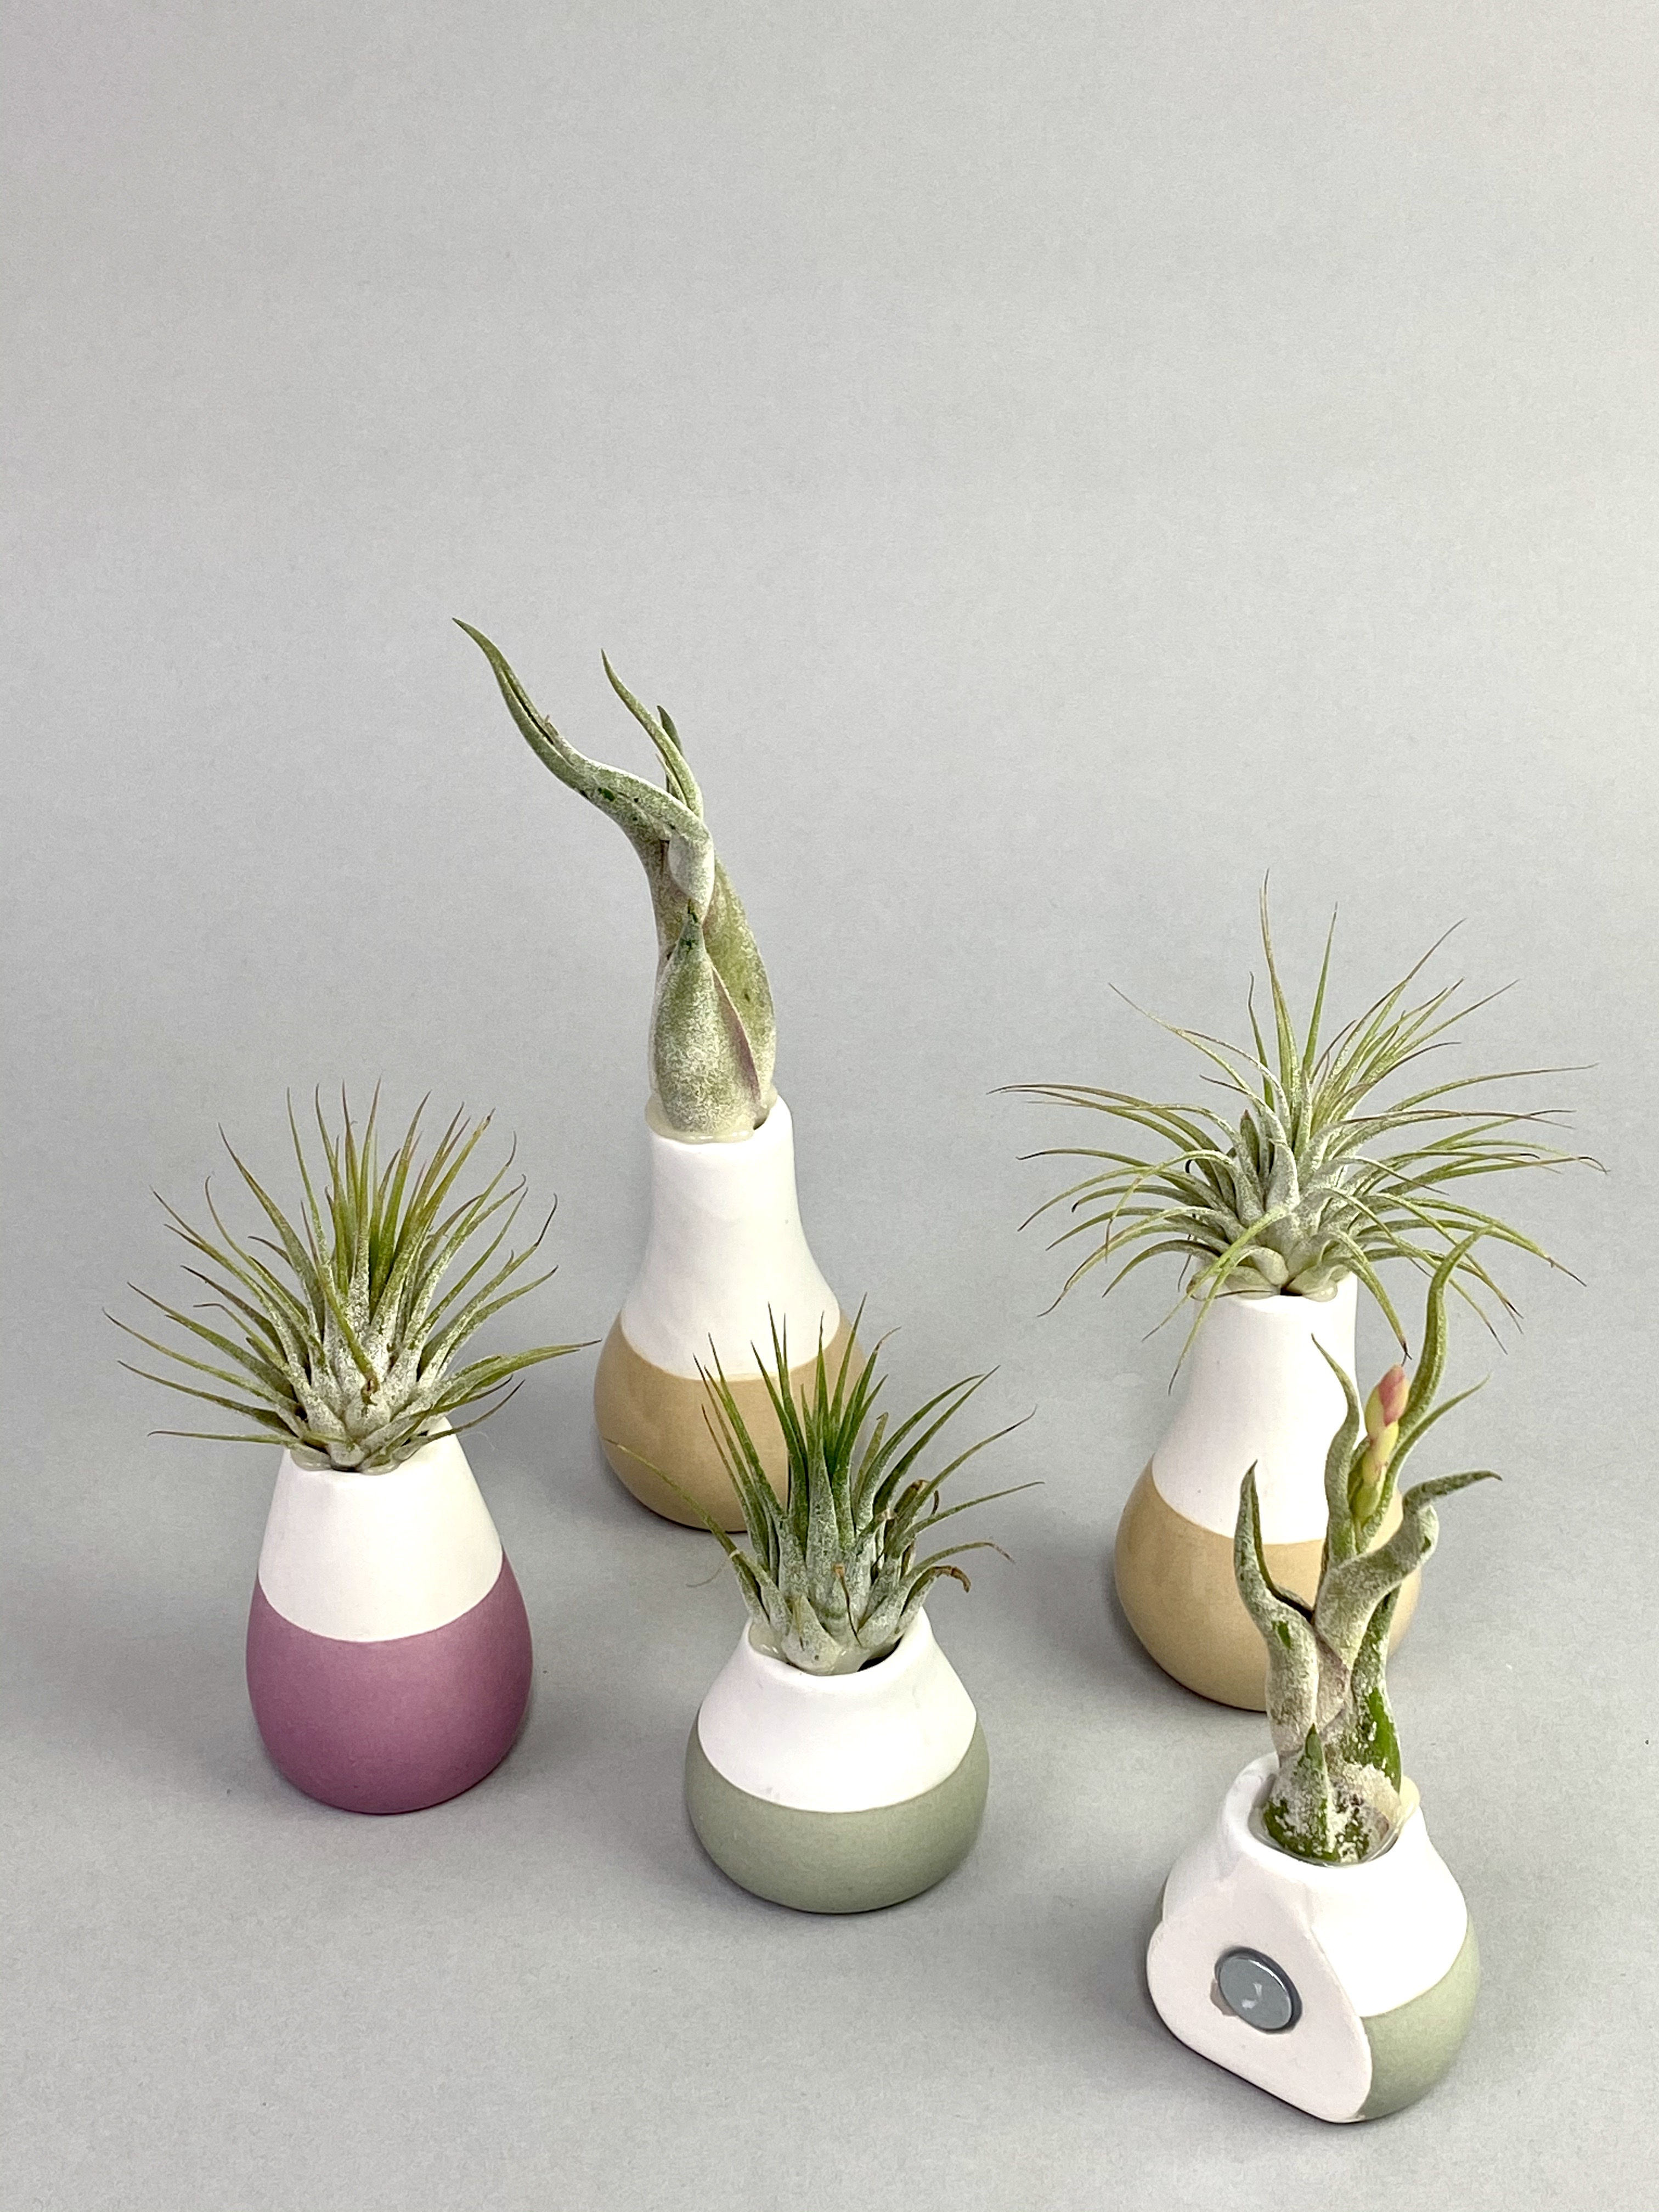 Airplant in Magentic Pot